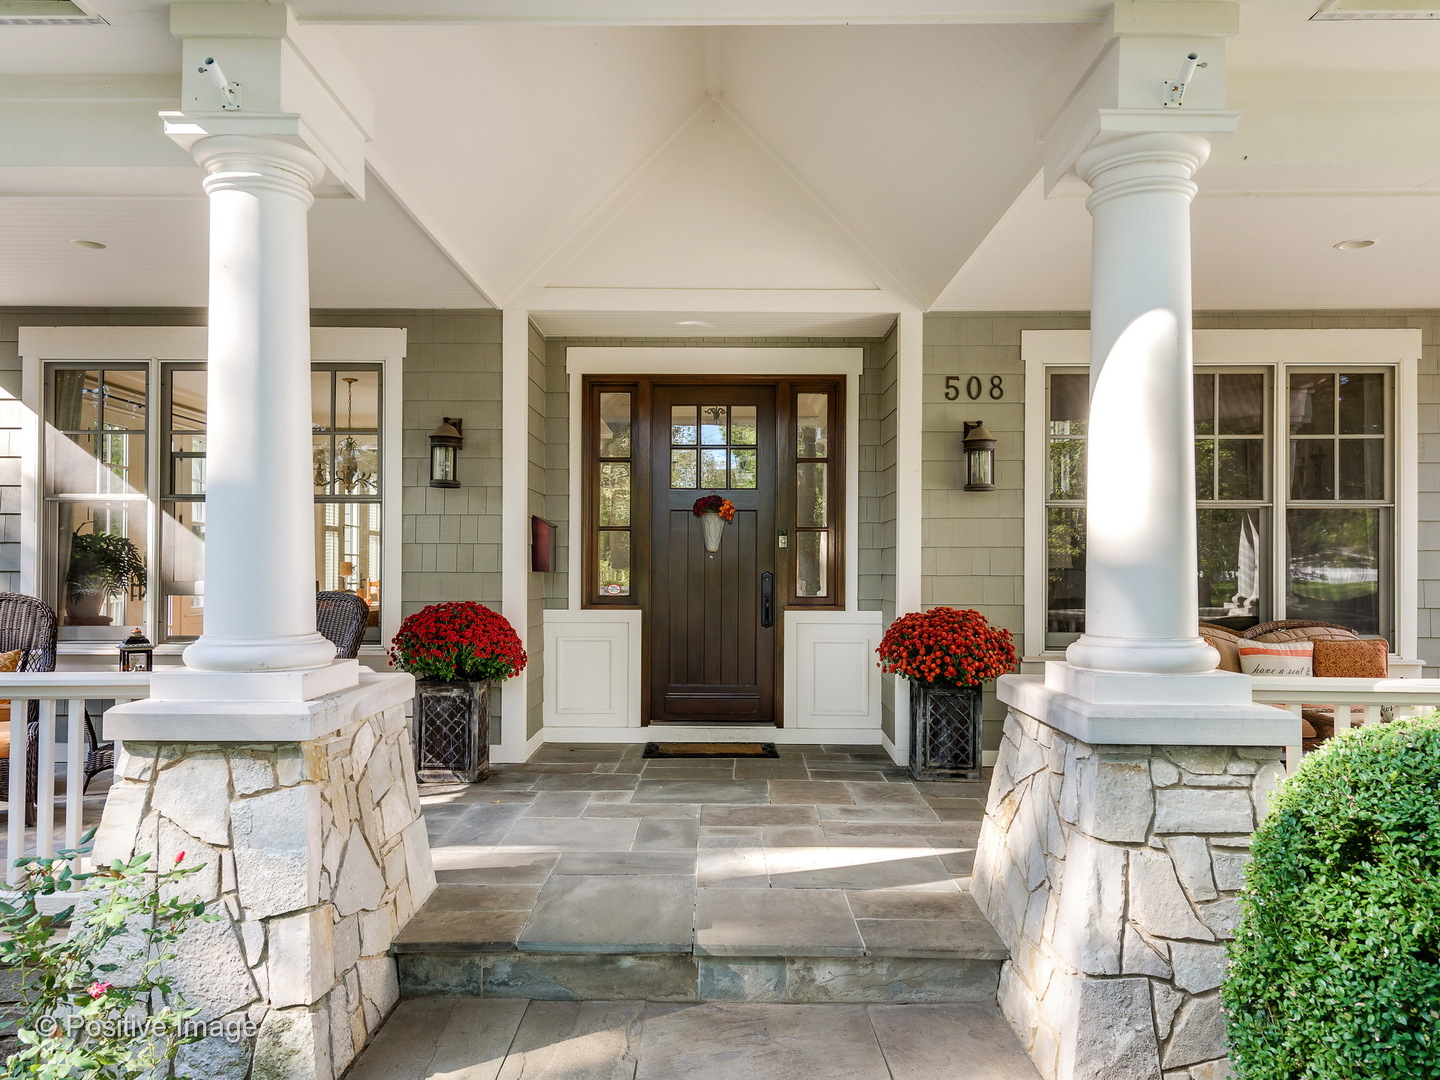 508 South Lincoln Street, Hinsdale, IL - USA (photo 3)